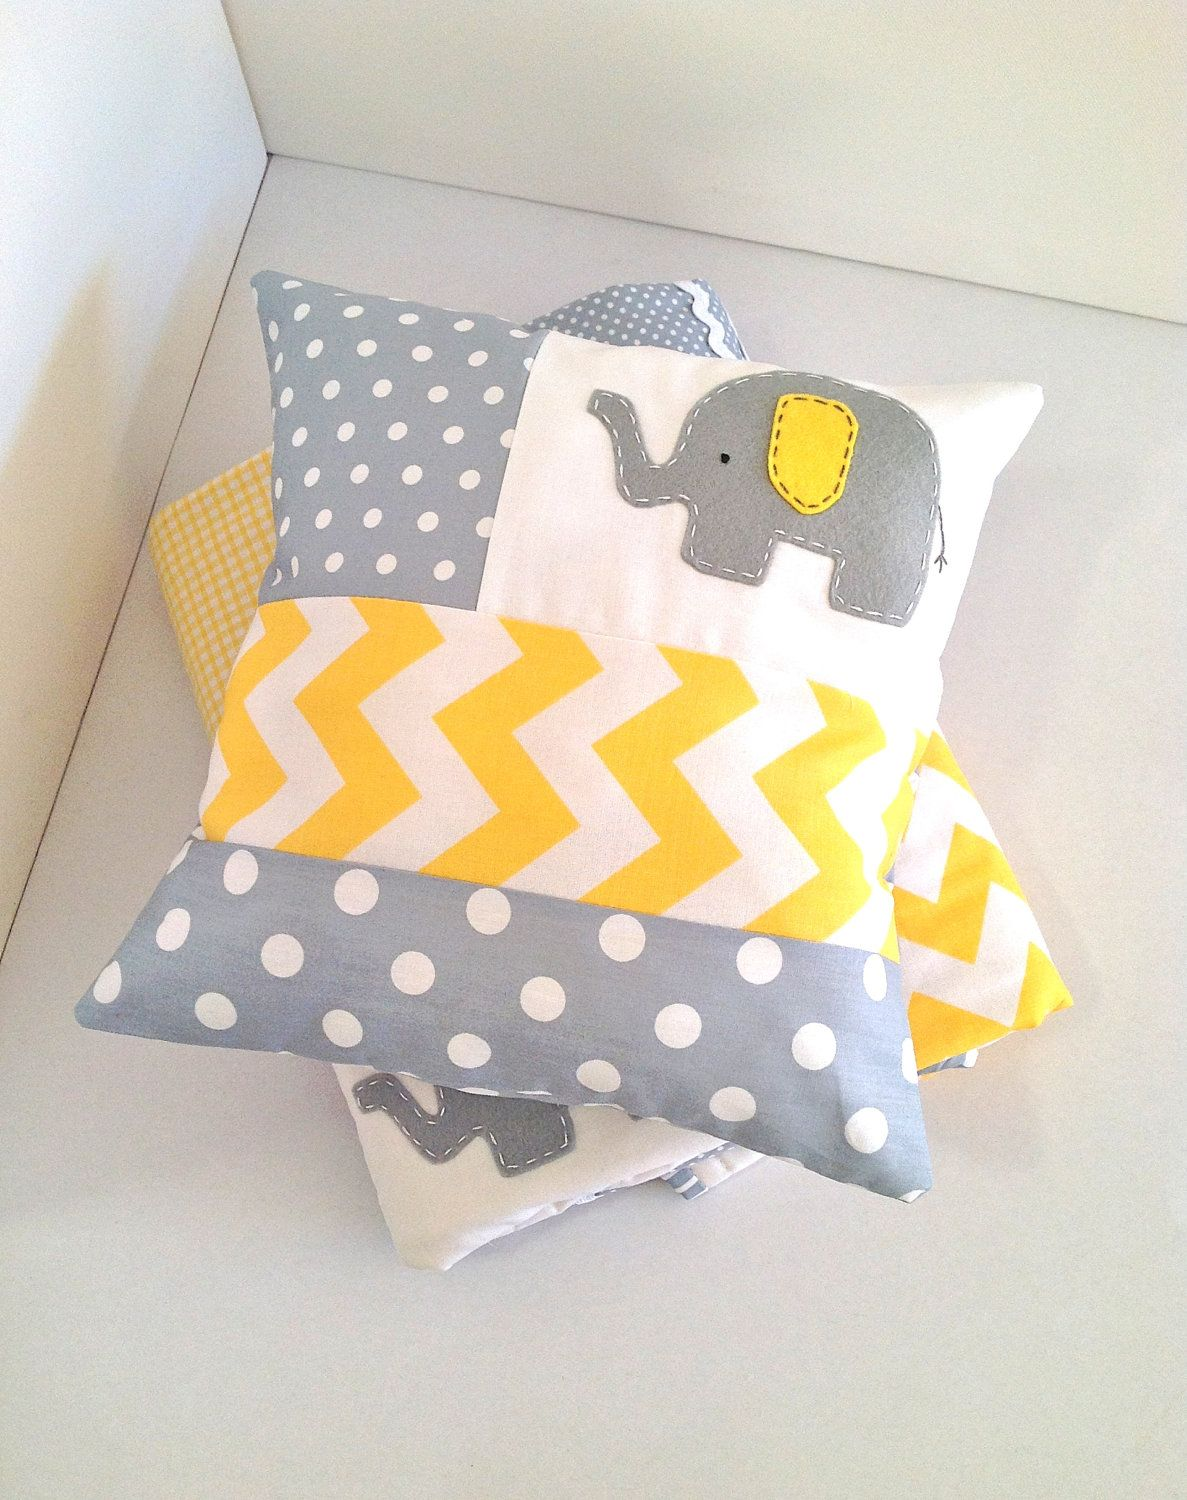 Baby bed and pillow - Baby Room Elephant Yellow And Grey Elephant Baby Crib Quilt And Pillow In Yellow And